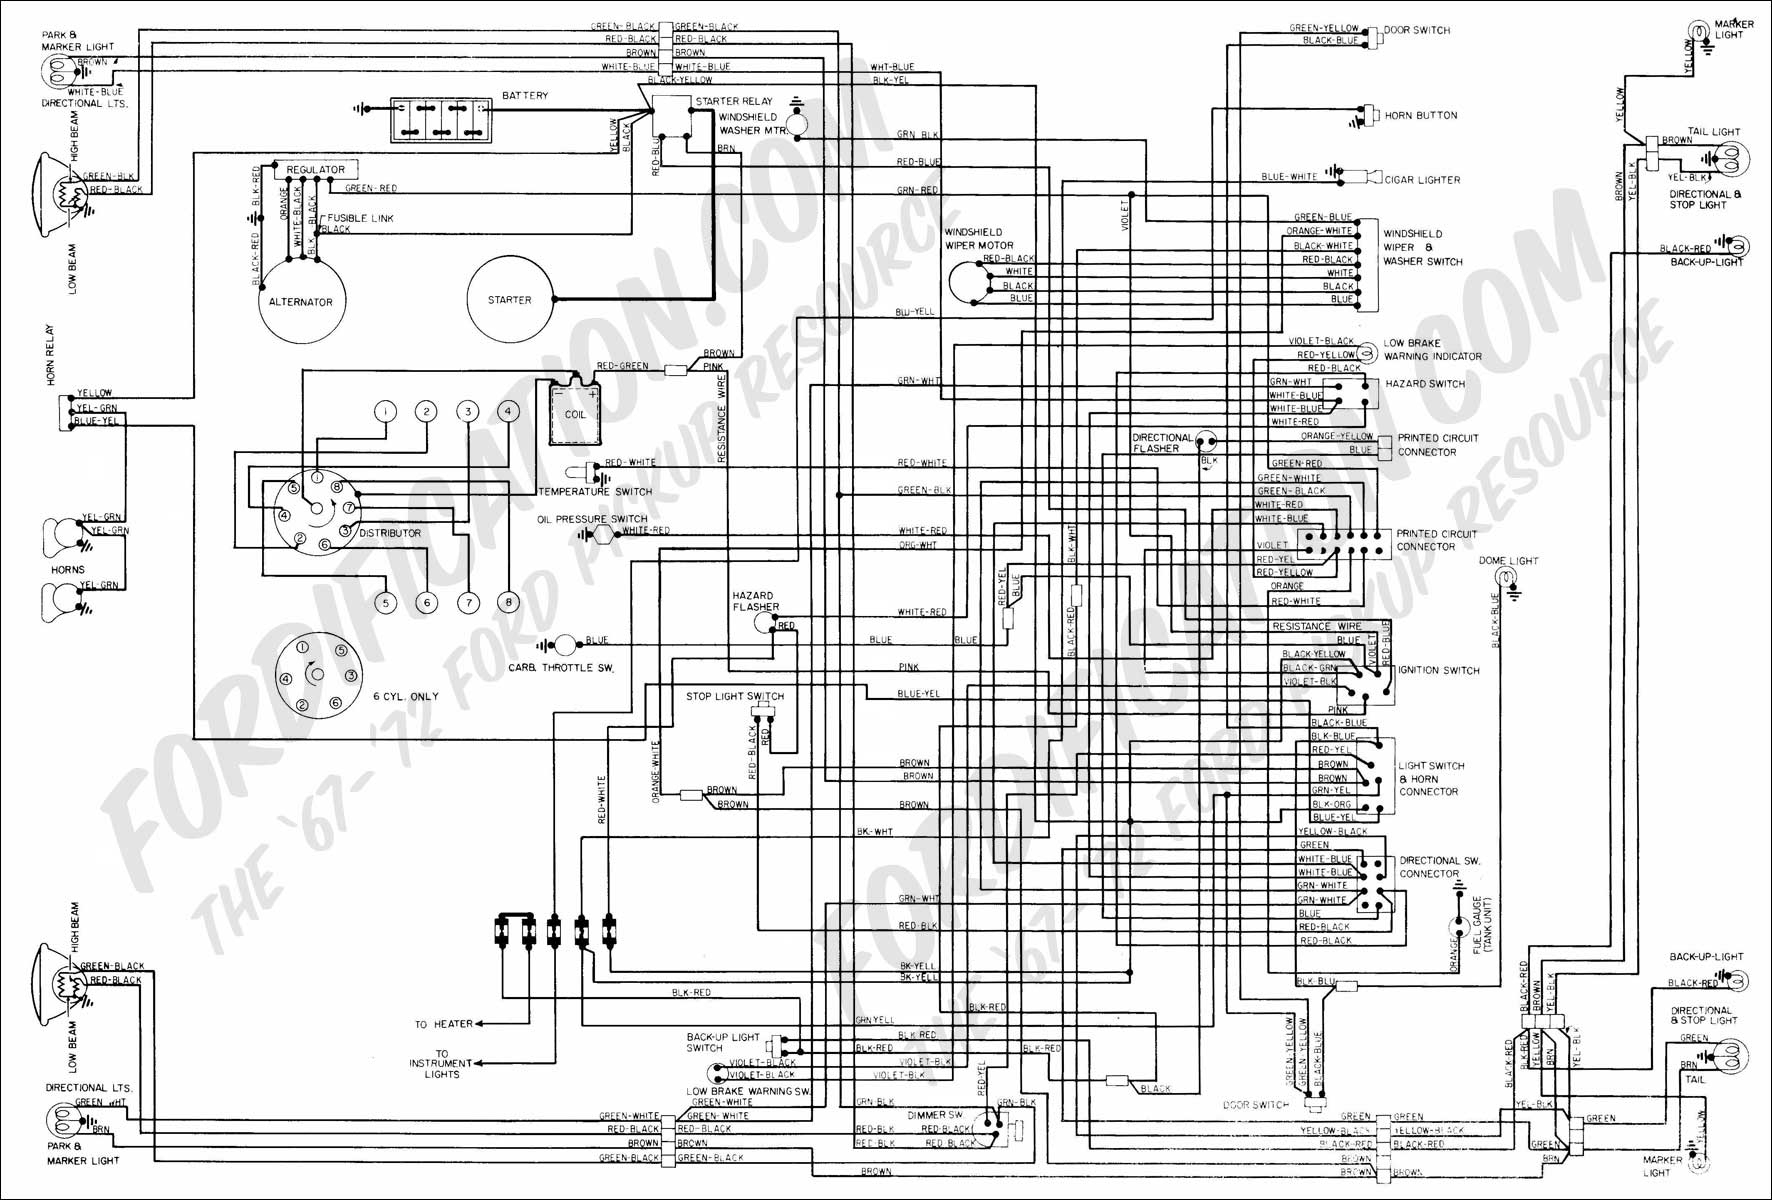 Ford Van Wire Diagram | Wiring Diagram - Ford F150 Trailer Wiring Harness Diagram